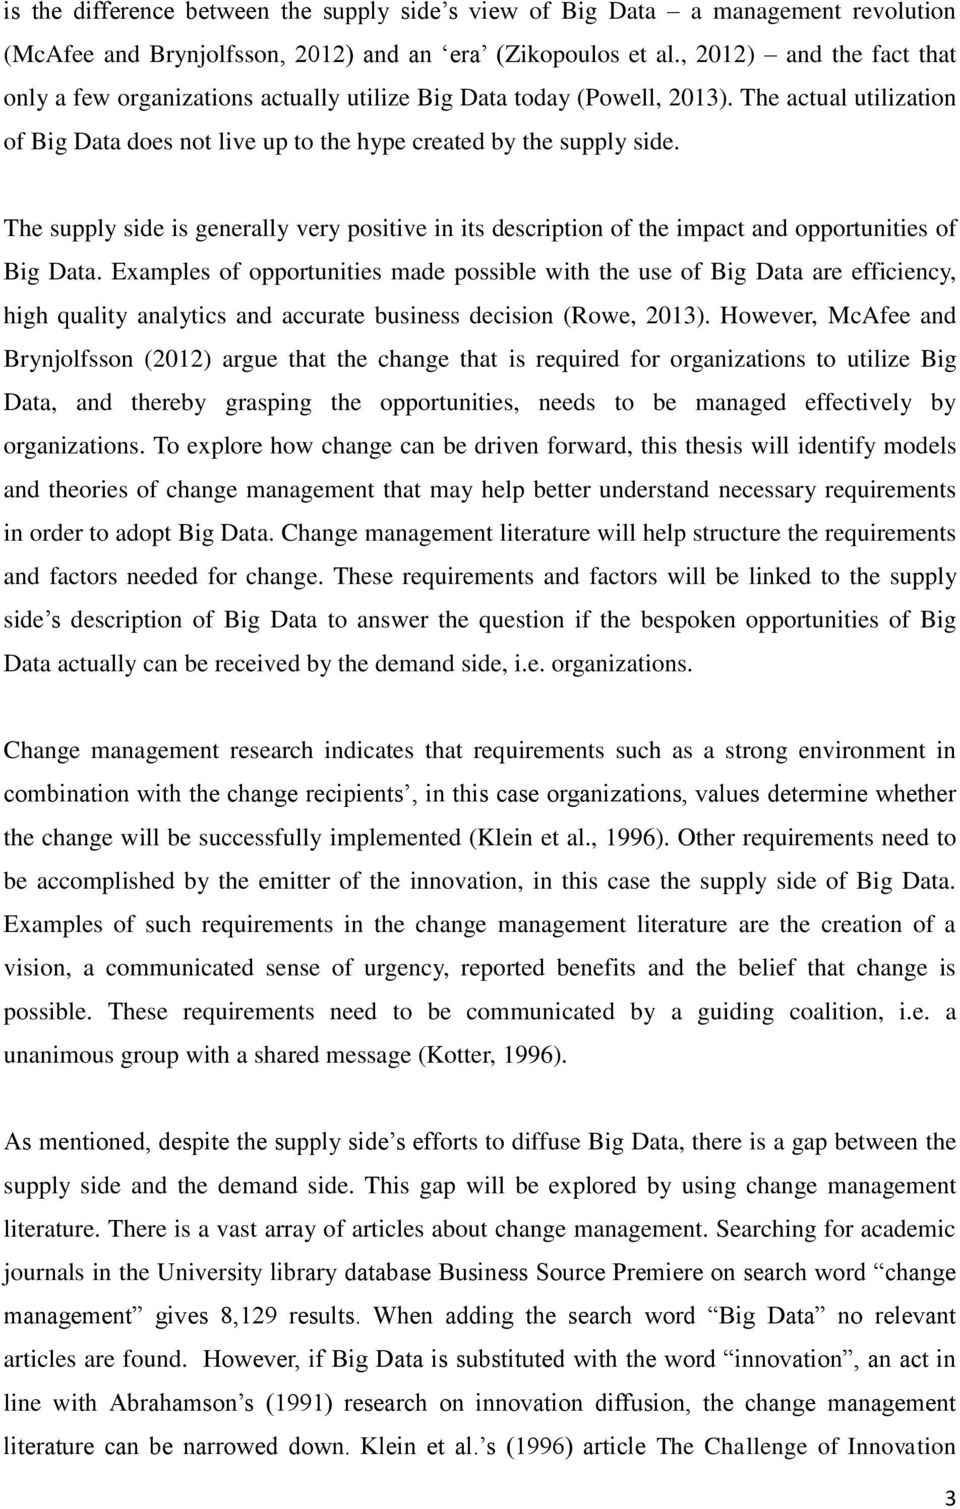 The supply side is generally very positive in its description of the impact and opportunities of Big Data.